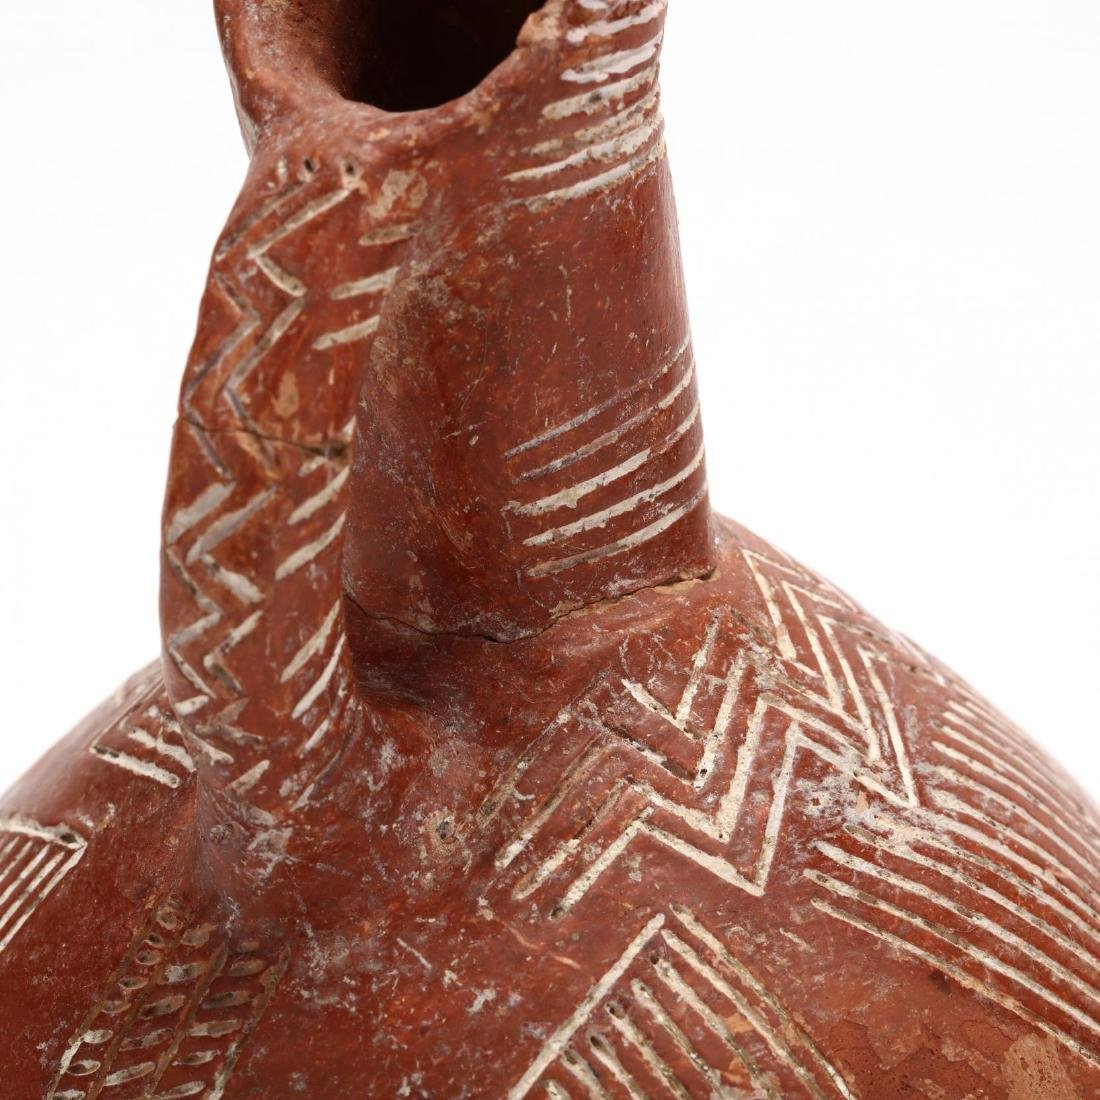 Cypriot Early Bronze Age Polished Red Ware Ewer - 5